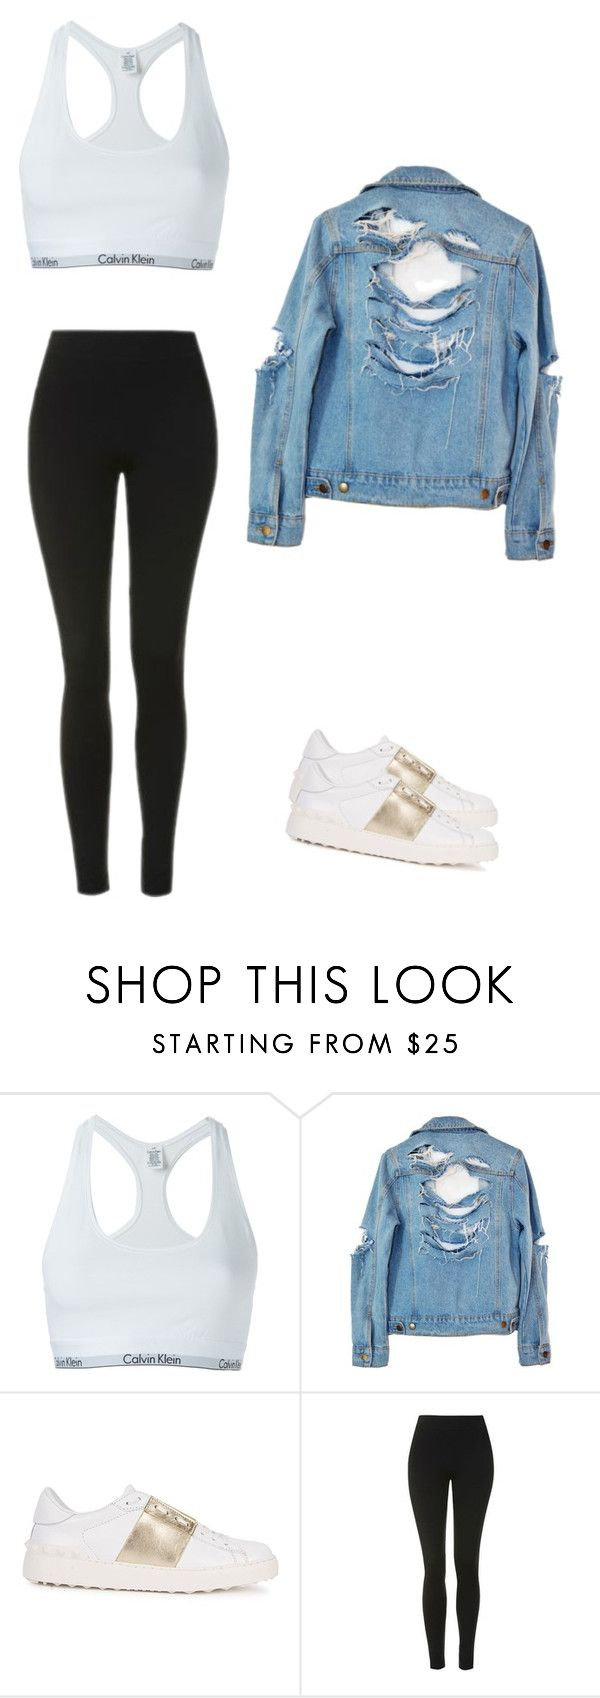 """Madison Beer style"" by cheyyy13 ❤ liked on Polyvore featuring Calvin Klein Underwear, High Heels Suicide, Valentino and Topshop"